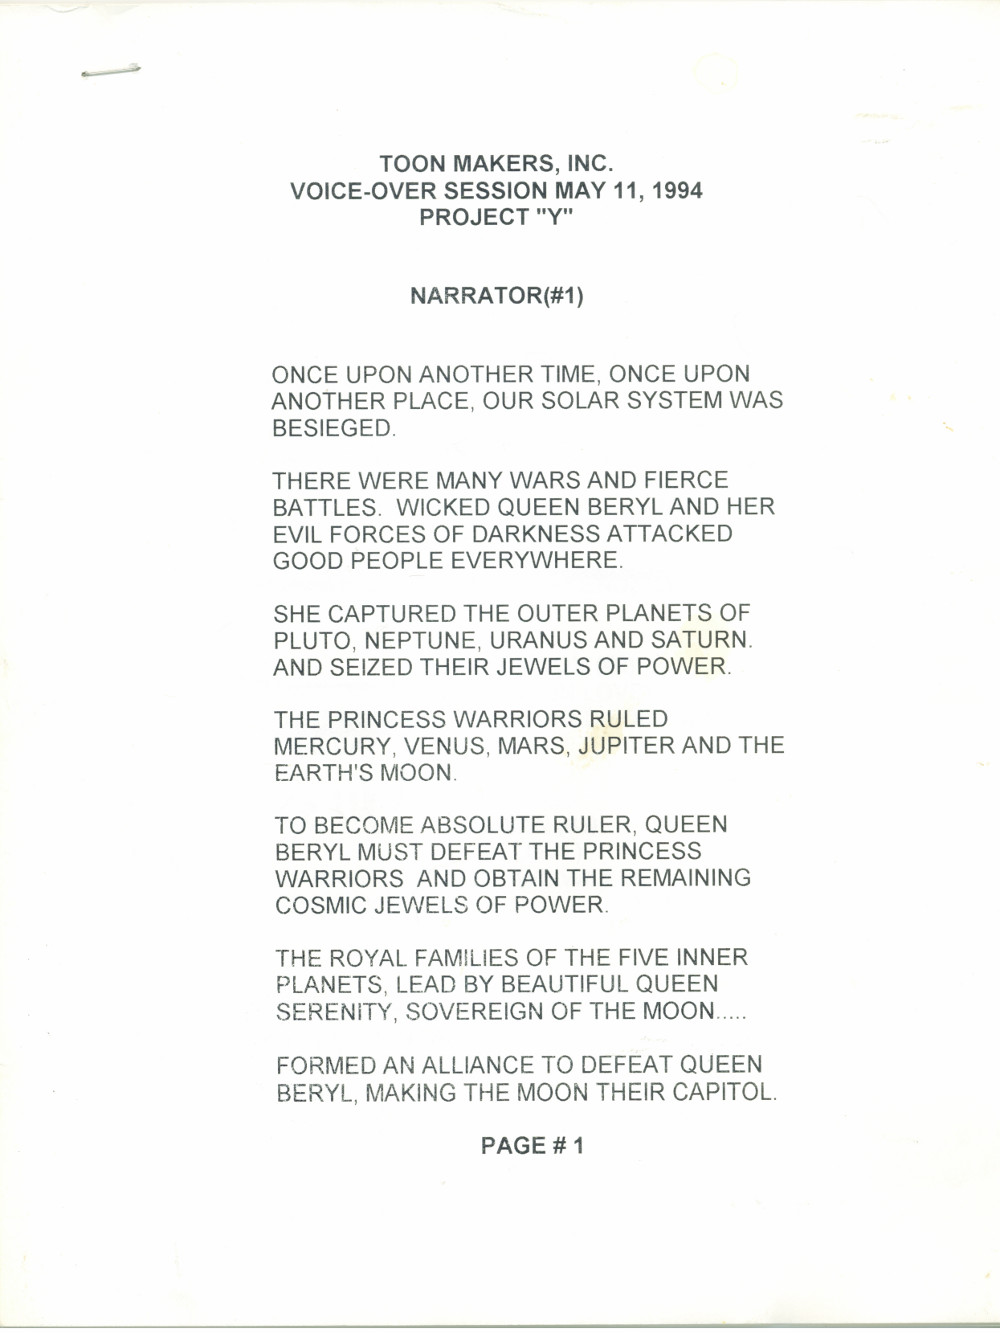 Toon Makers' Sailor Moon voice-over session script page 1 ... The Guardian